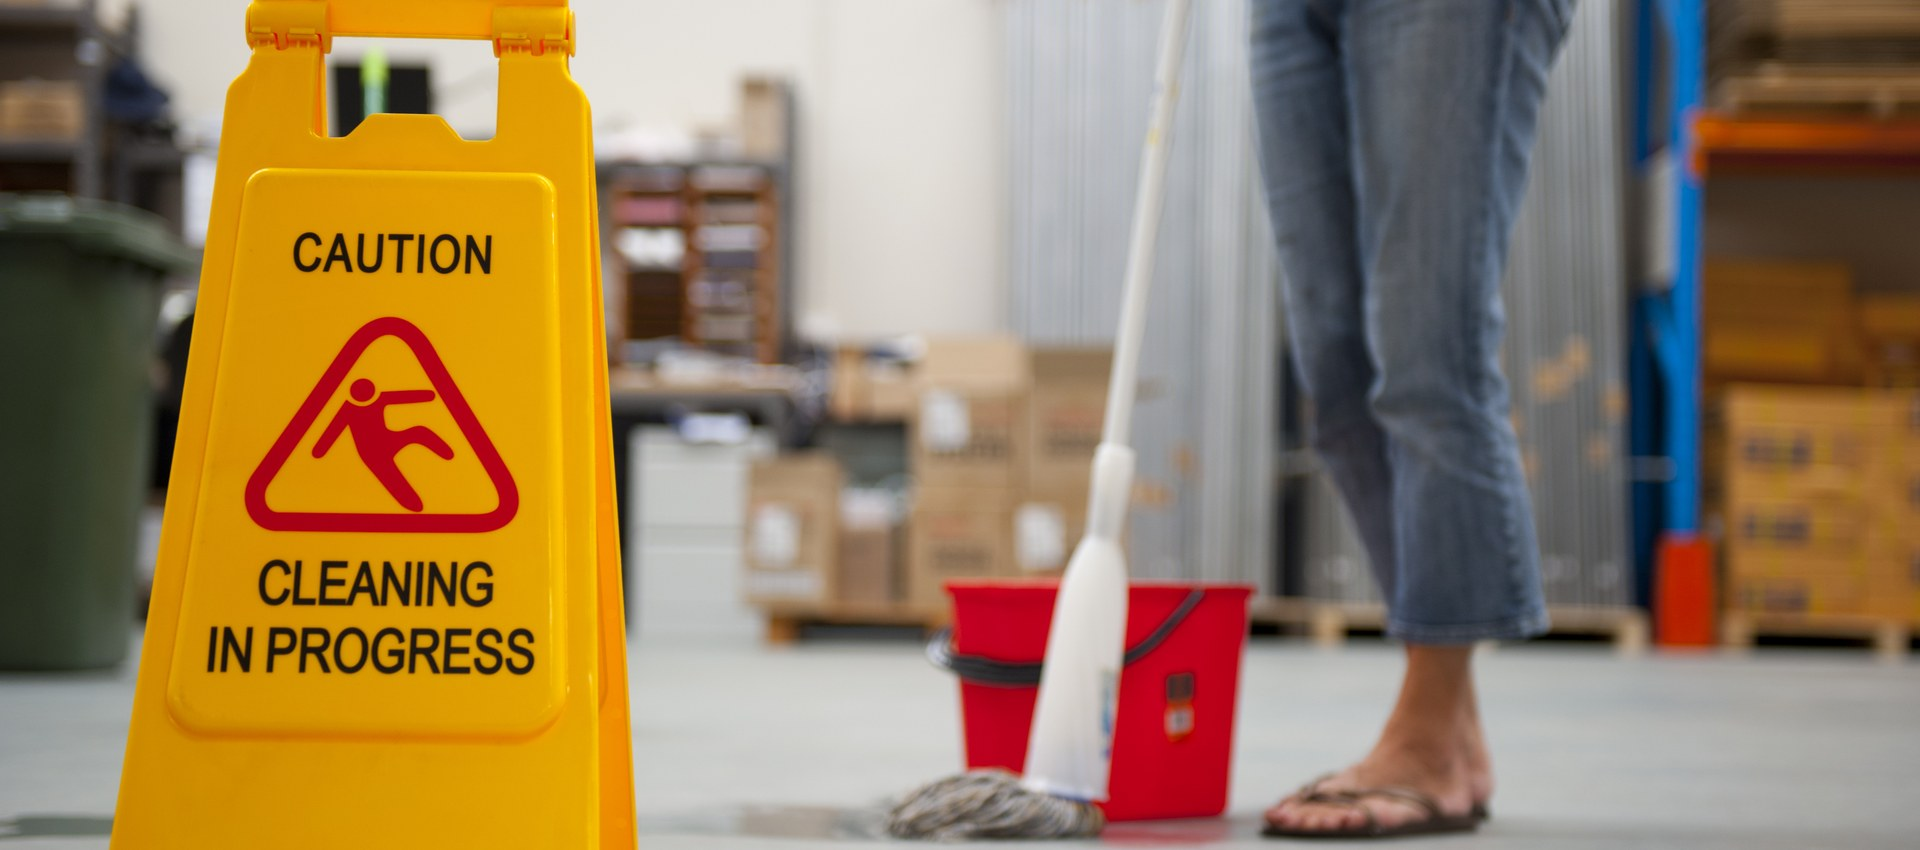 Best Practices to Keep Your Warehouse Clean